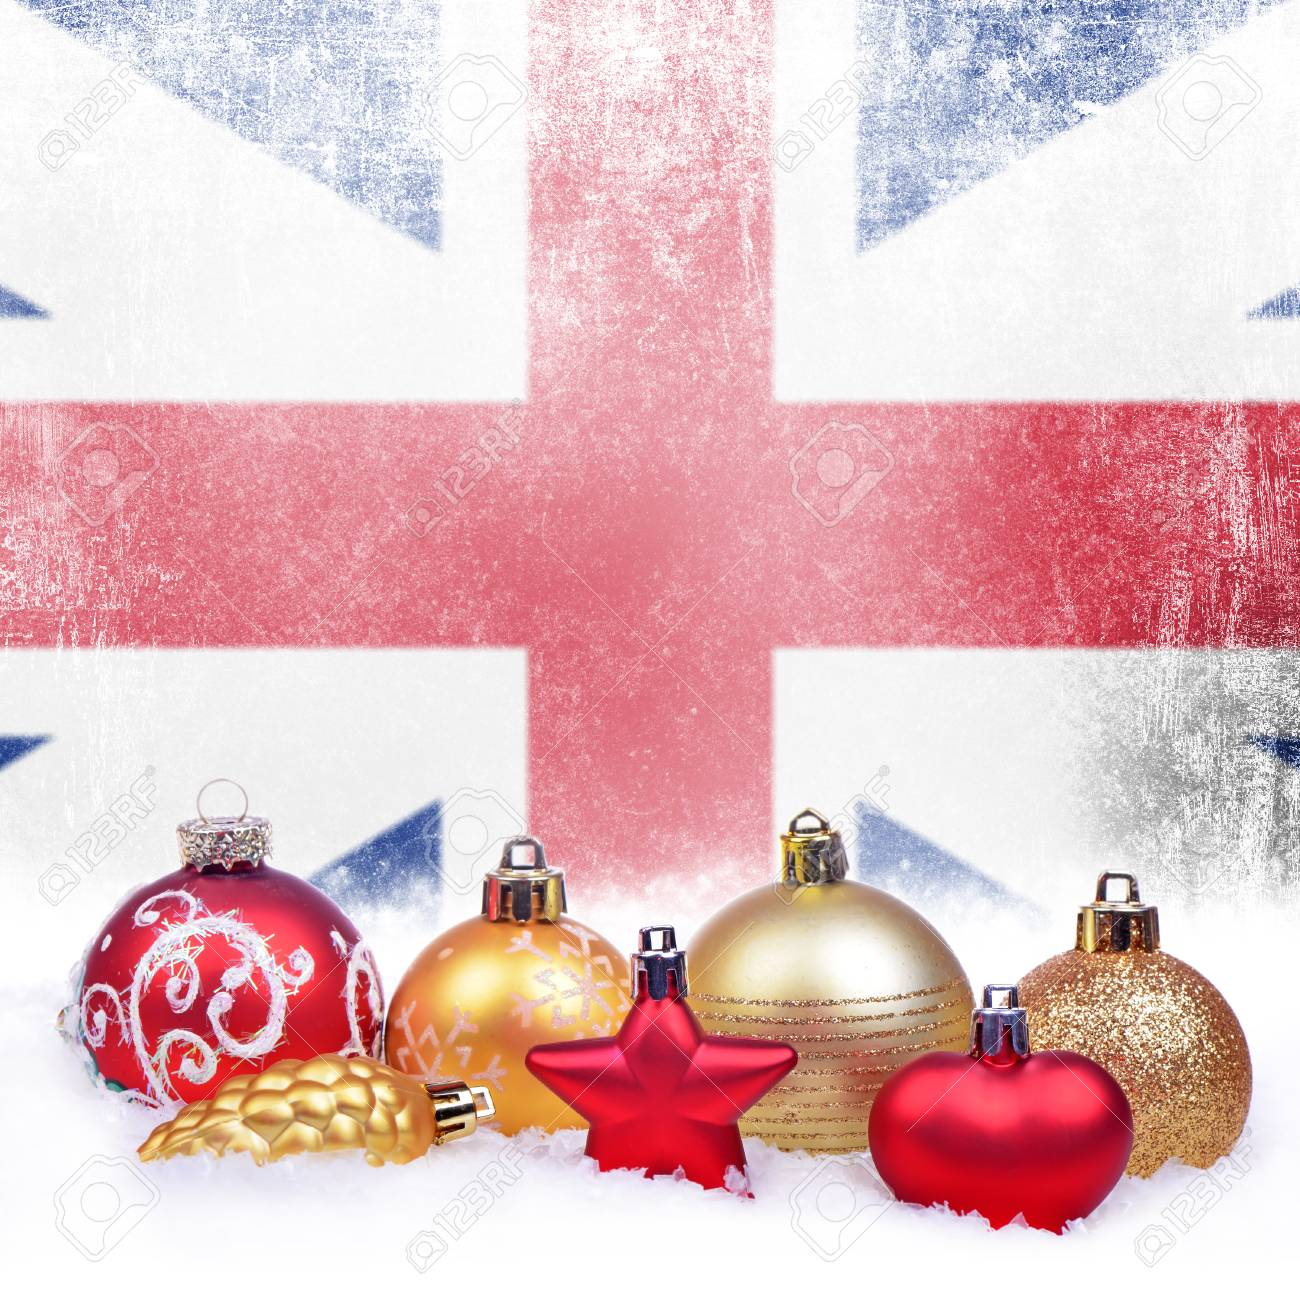 Christmas grunge background with festive decorations,balls, star,..